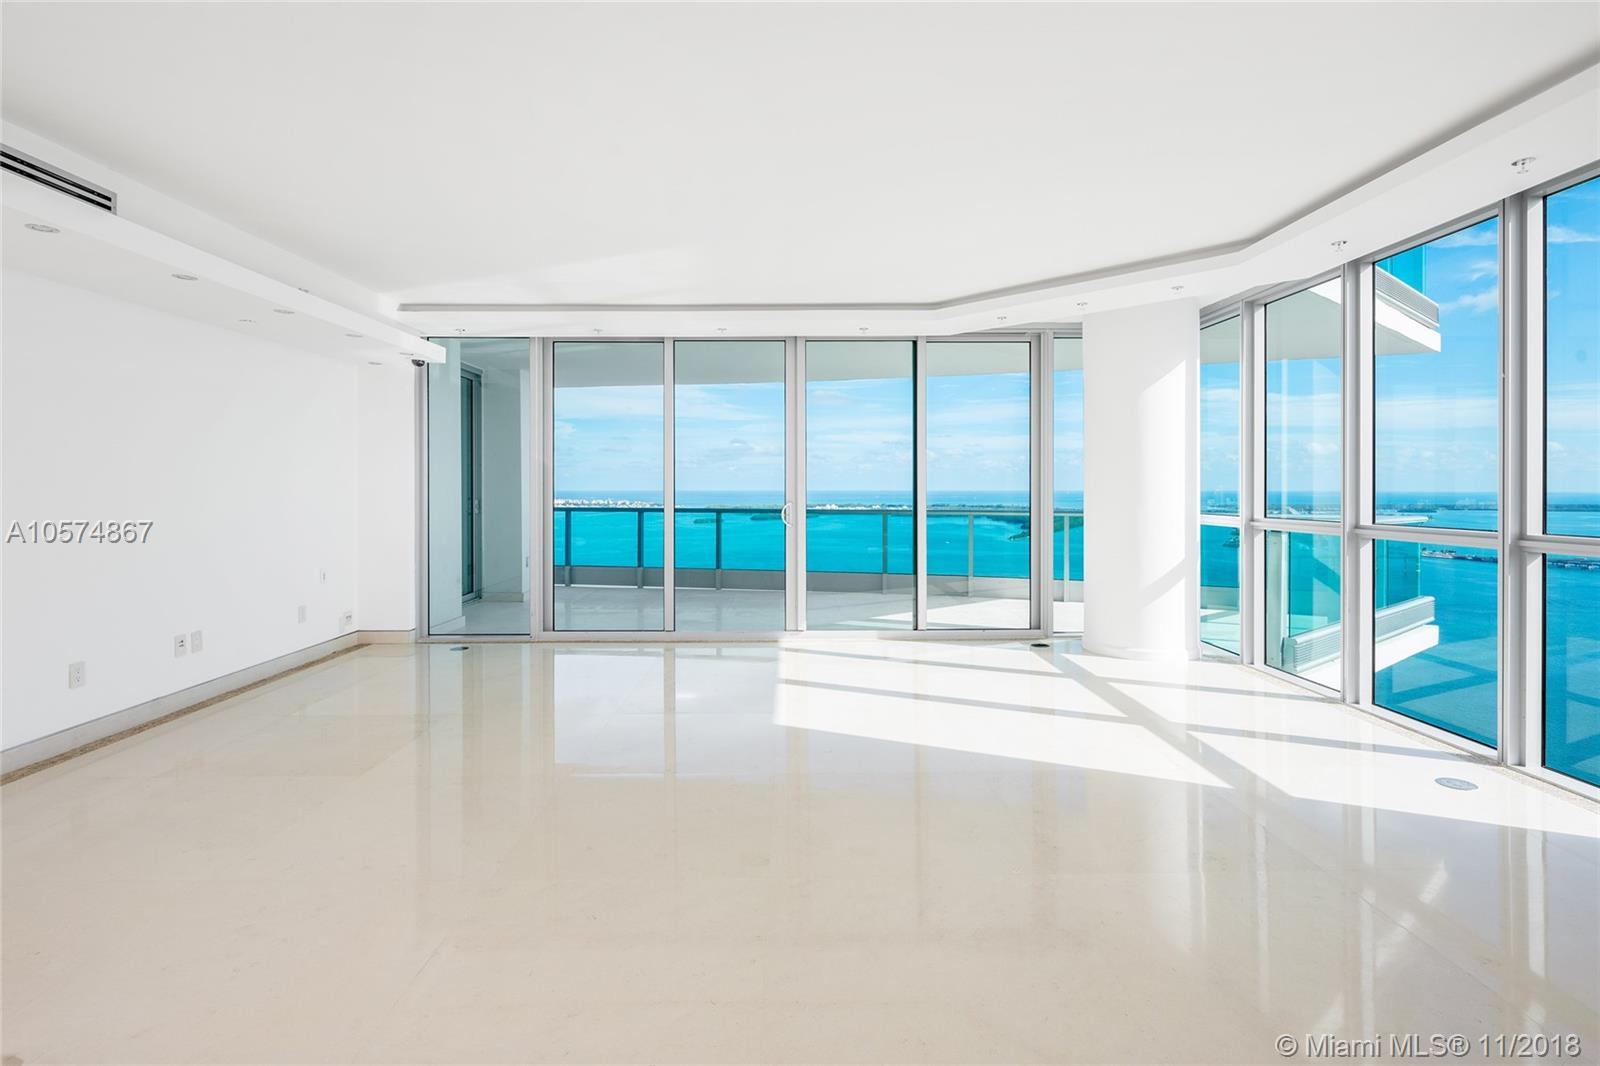 Located in the heart of downtown Miami this move-in ready unit on the 44th floor is truly stunning. The 4BR/4+1BA boast 3,415 SF, two large terraces and panoramic sunrise & sunset views as far as the eye can see over Biscayne Bay, Key Biscayne, Miami Beach, Atlantic Ocean & Miami. Beautiful stone floors throughout & wood floors in all bedrooms, open living & dining areas, family room & sleek gourmet kitchen w/top of the line appliances all w/incredible views. Large bayside principal suite features direct terrace access & amazing bathroom w/exquisite marble floors/walls, steam shower & Jacuzzi spa tub. Jade Brickell 5-star amenities include 24HR concierge, guest valet, health spa, gym, Resident Club Room, waterfront pool, party room & much more. This unit is truly a must see.